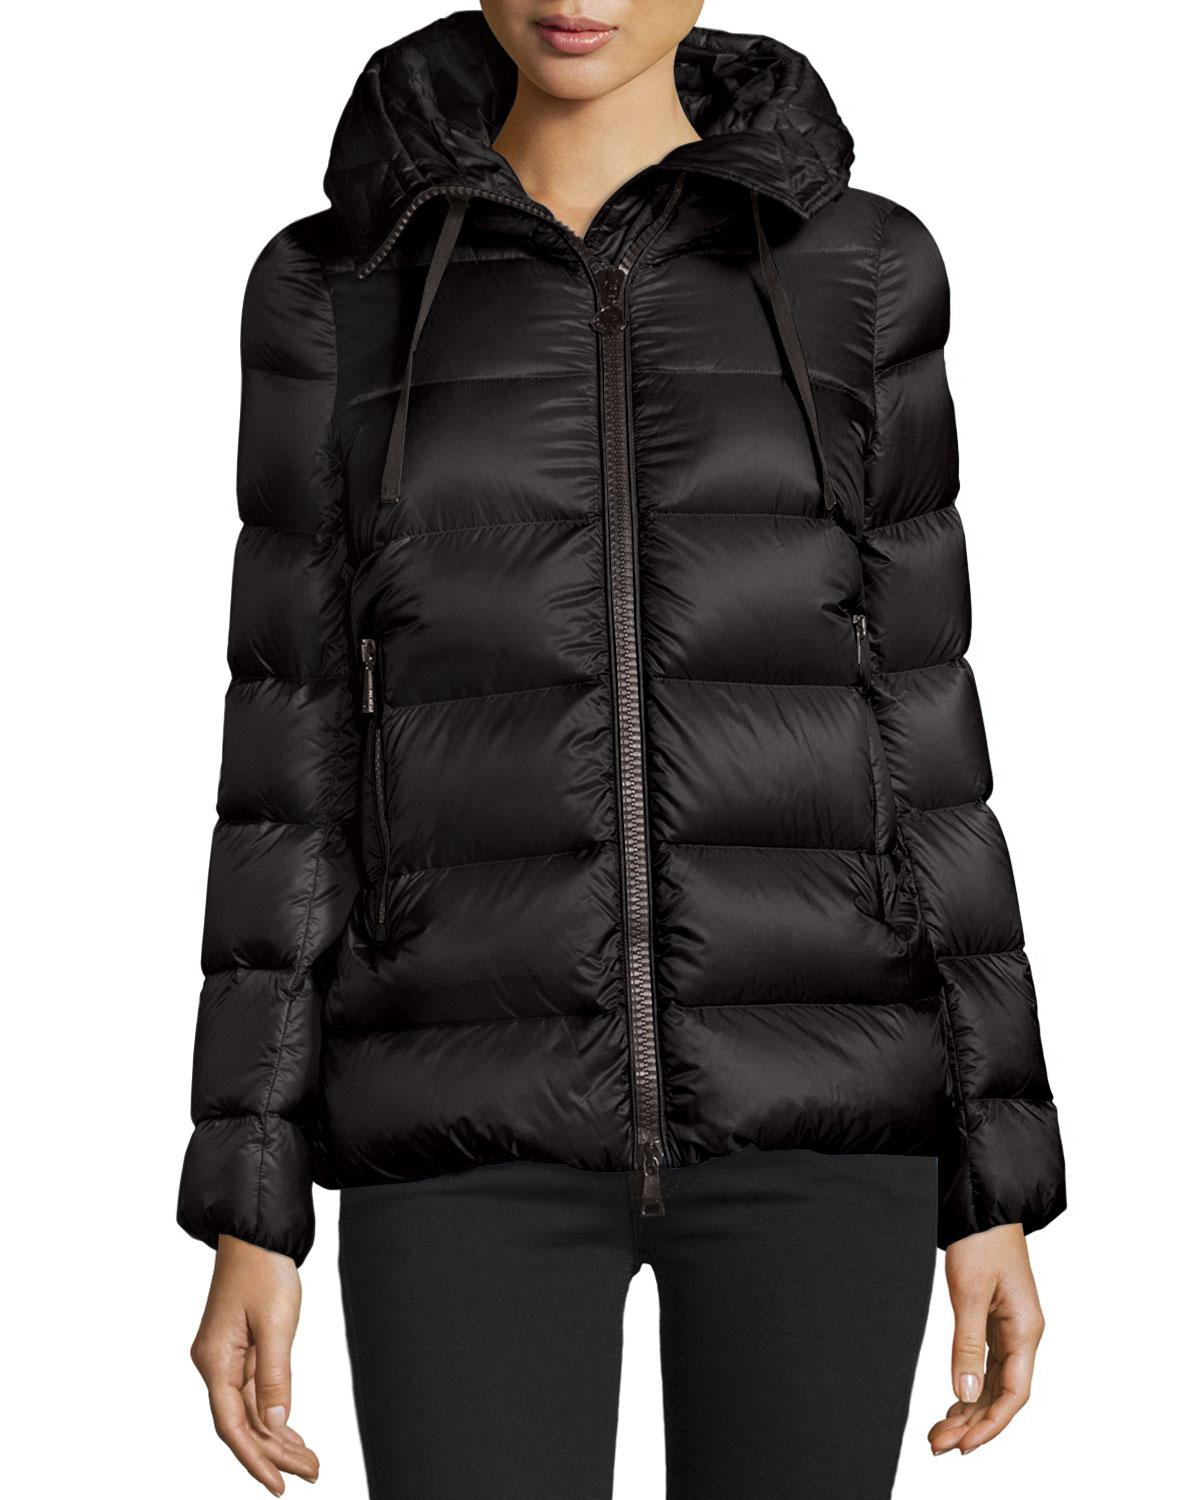 Moncler. Women's Black Serinde Hooded Short Puffer Jacket